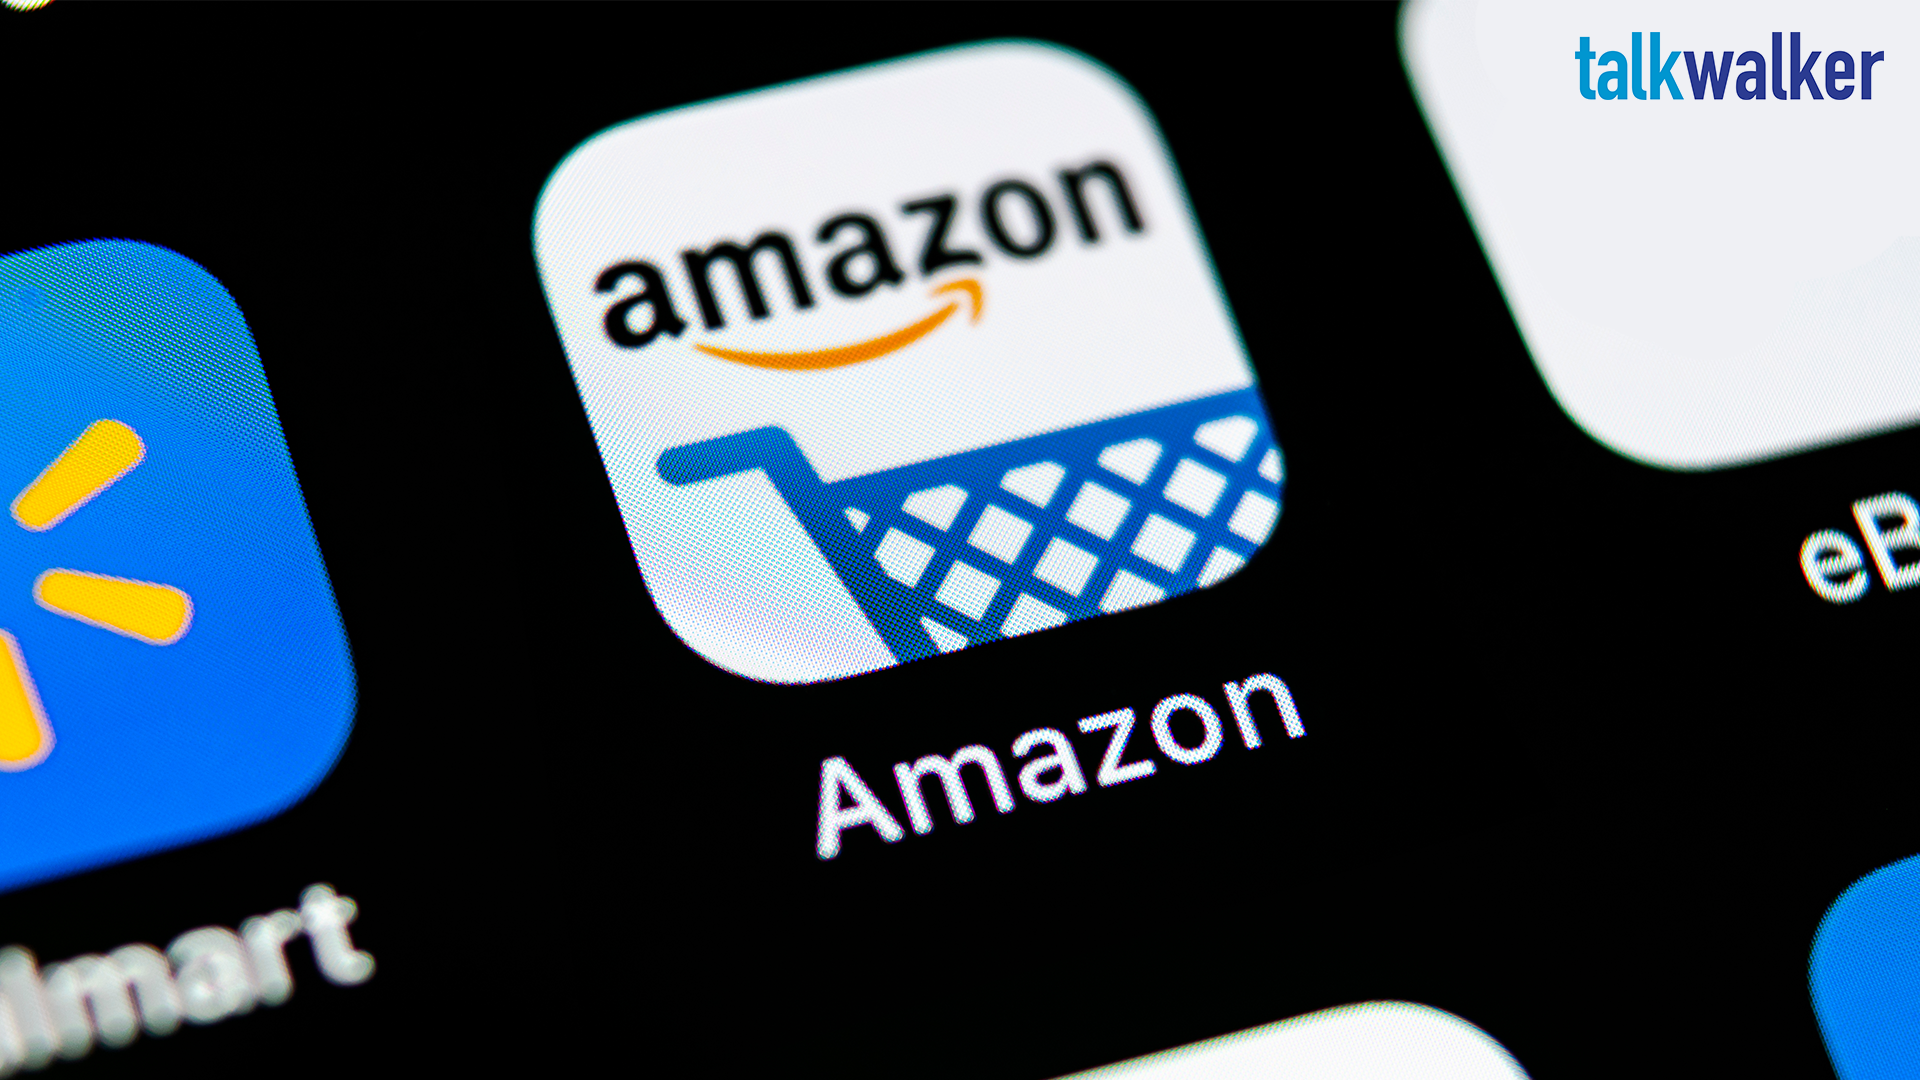 La strategia di marketing di Amazon: 5 modi per vincere sui social